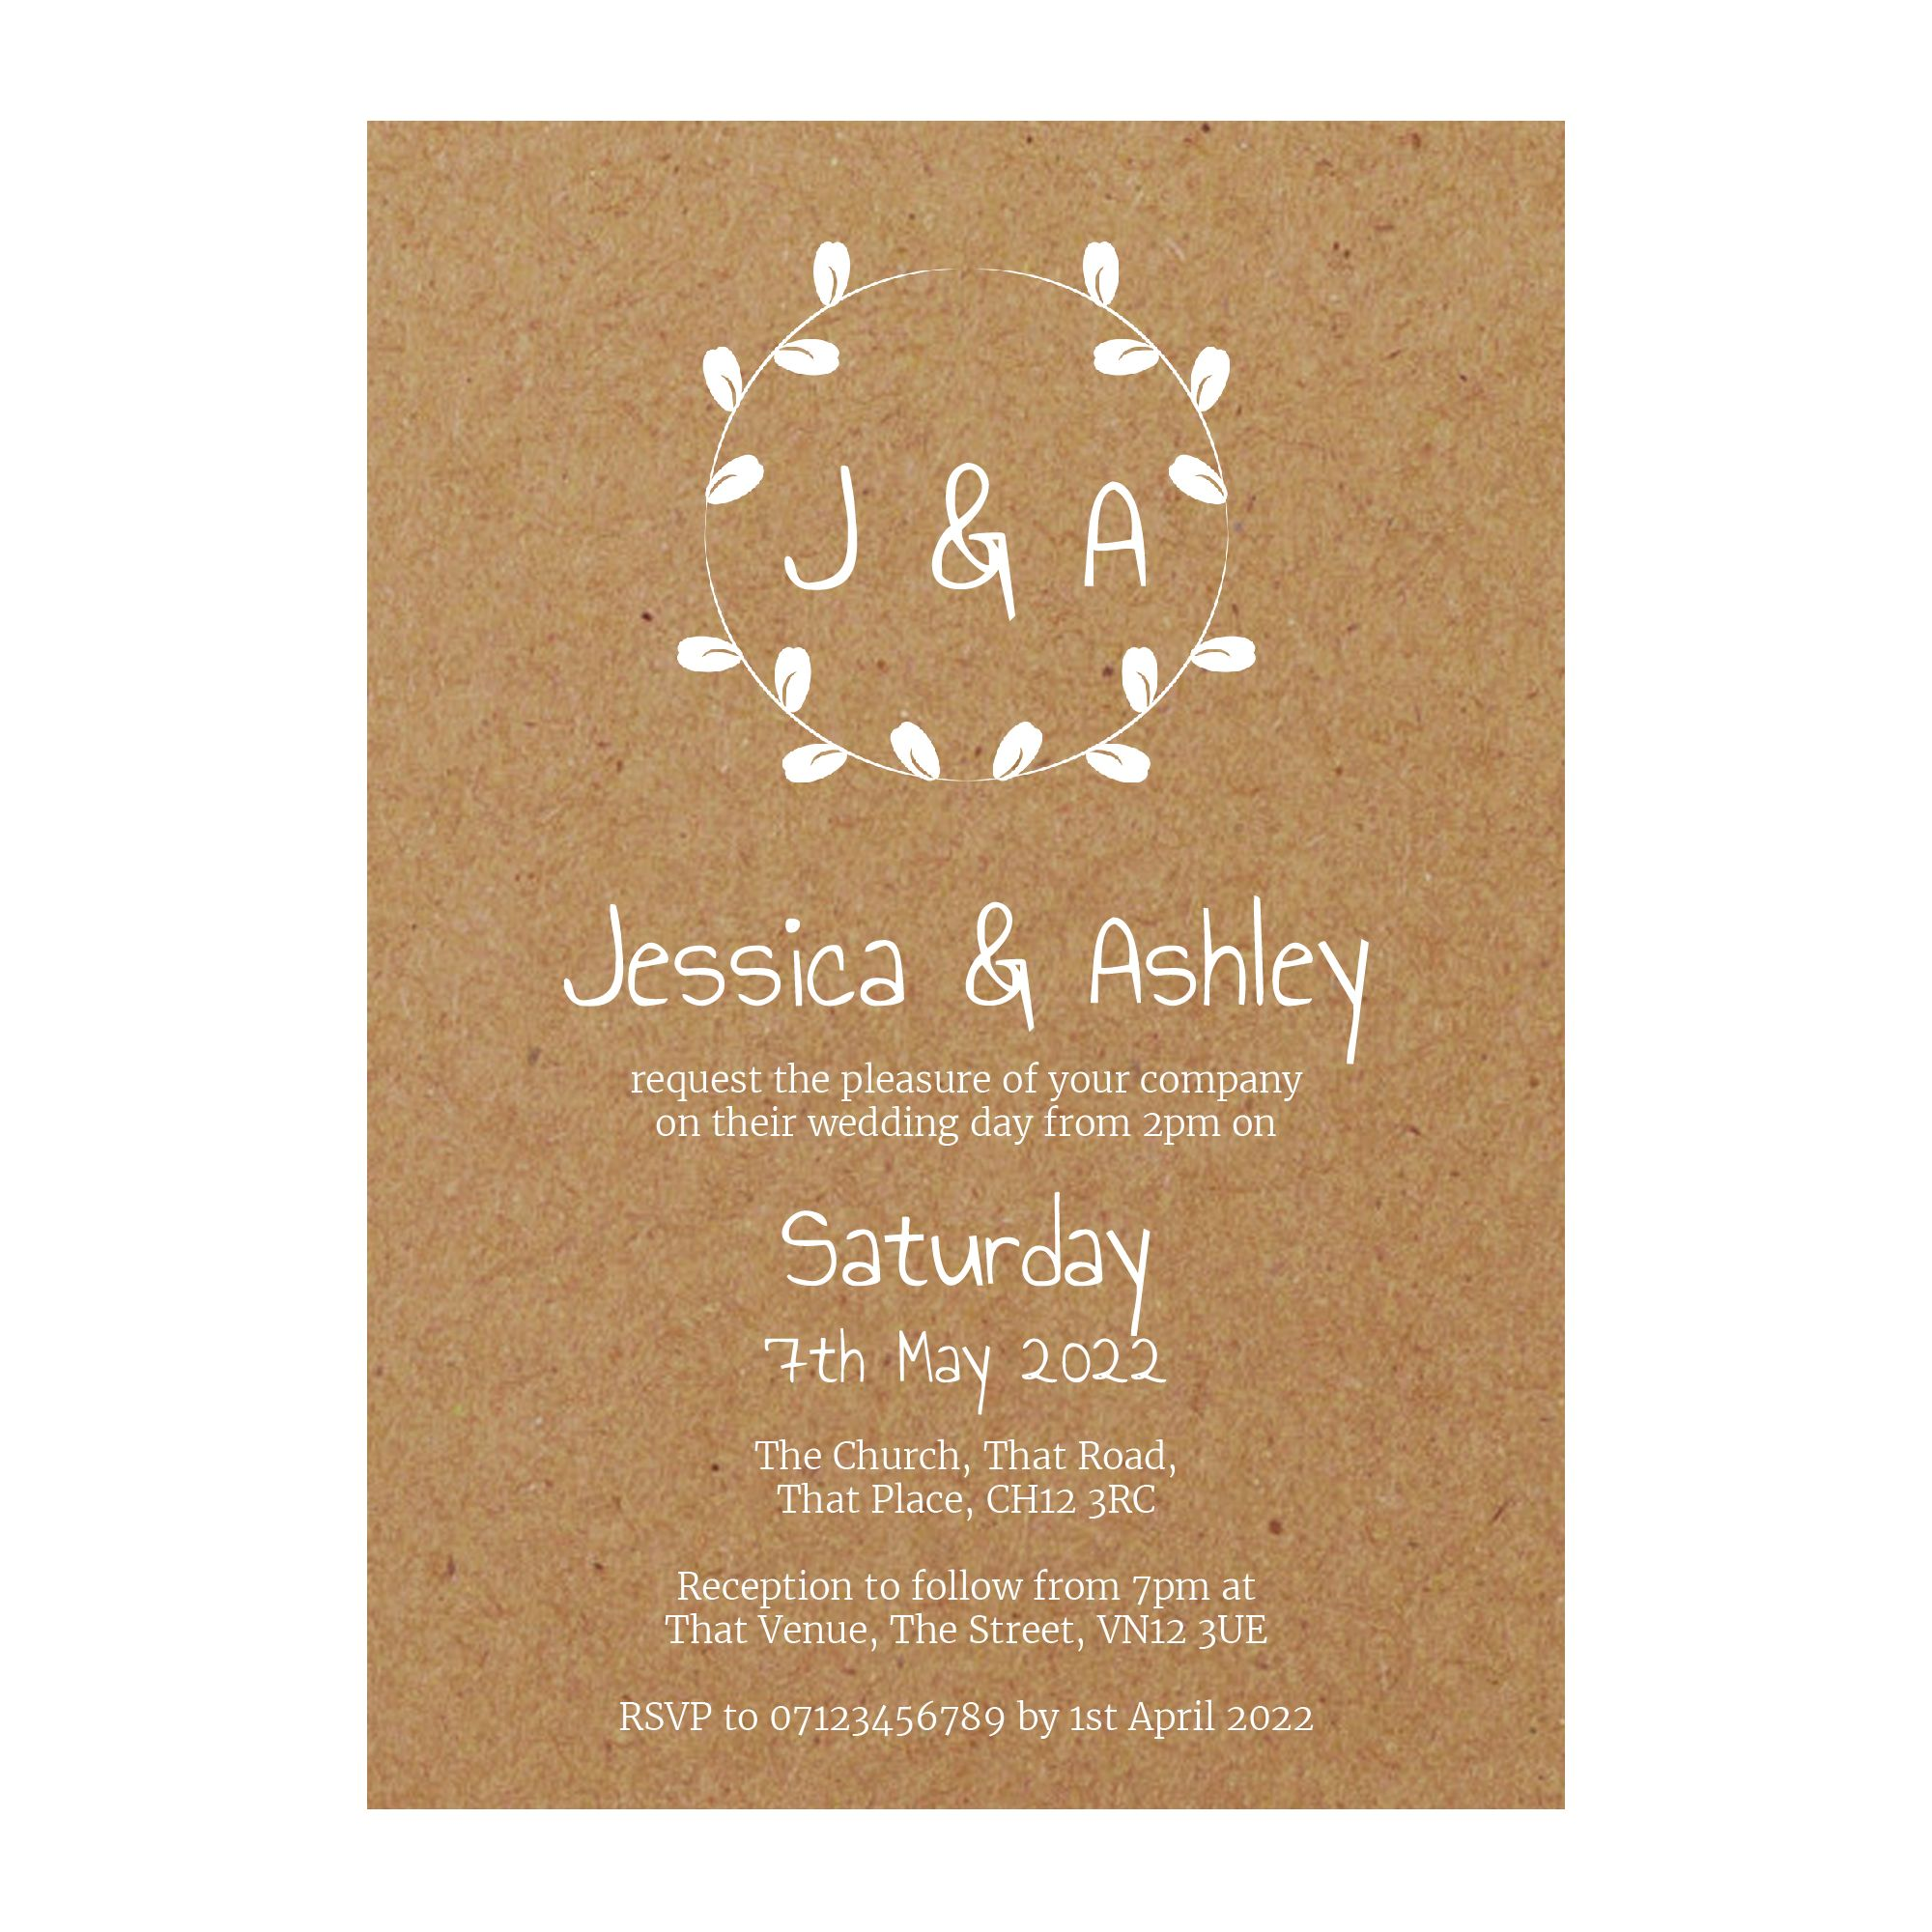 Recycled Brown Kraft with White Ink Minimalist Floral Wedding Invitations